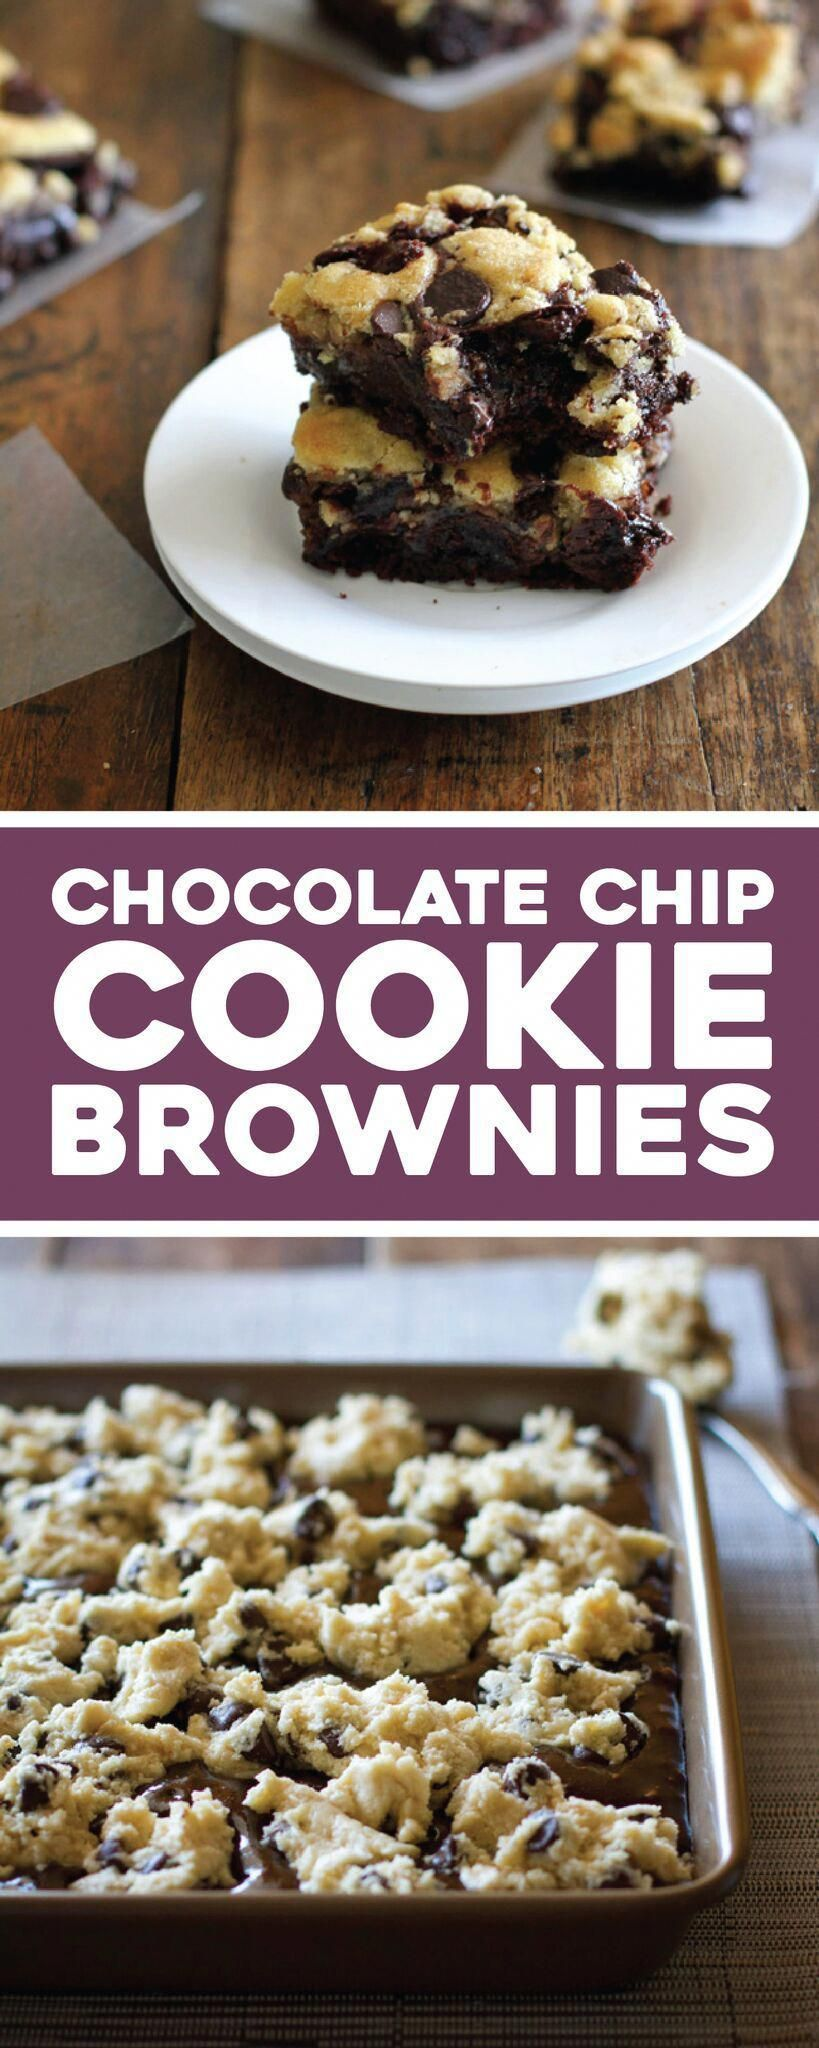 easy chocolate chip cookie brownies have my very favorite chocolate chip cookie dough baked into the top layer of decadent, fudgy brownies. |